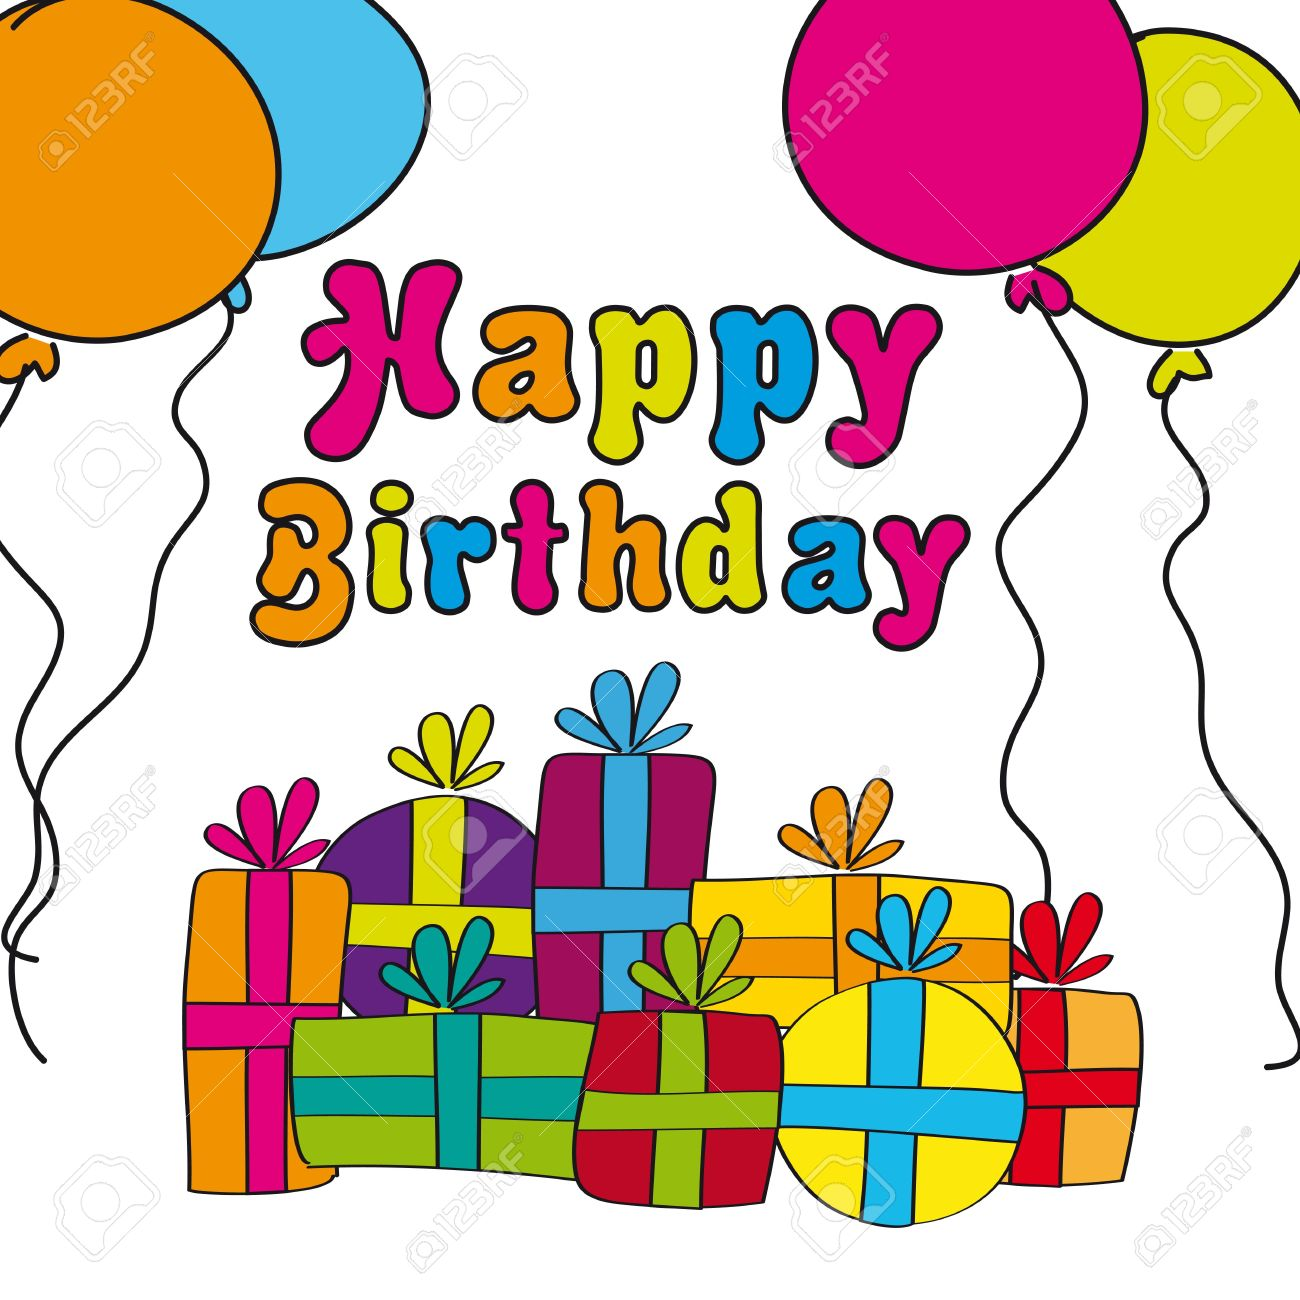 happy birthday gift drawing ; 13105899-happy-birthday-with-gifts-and-balloons-hand-drawing-vector